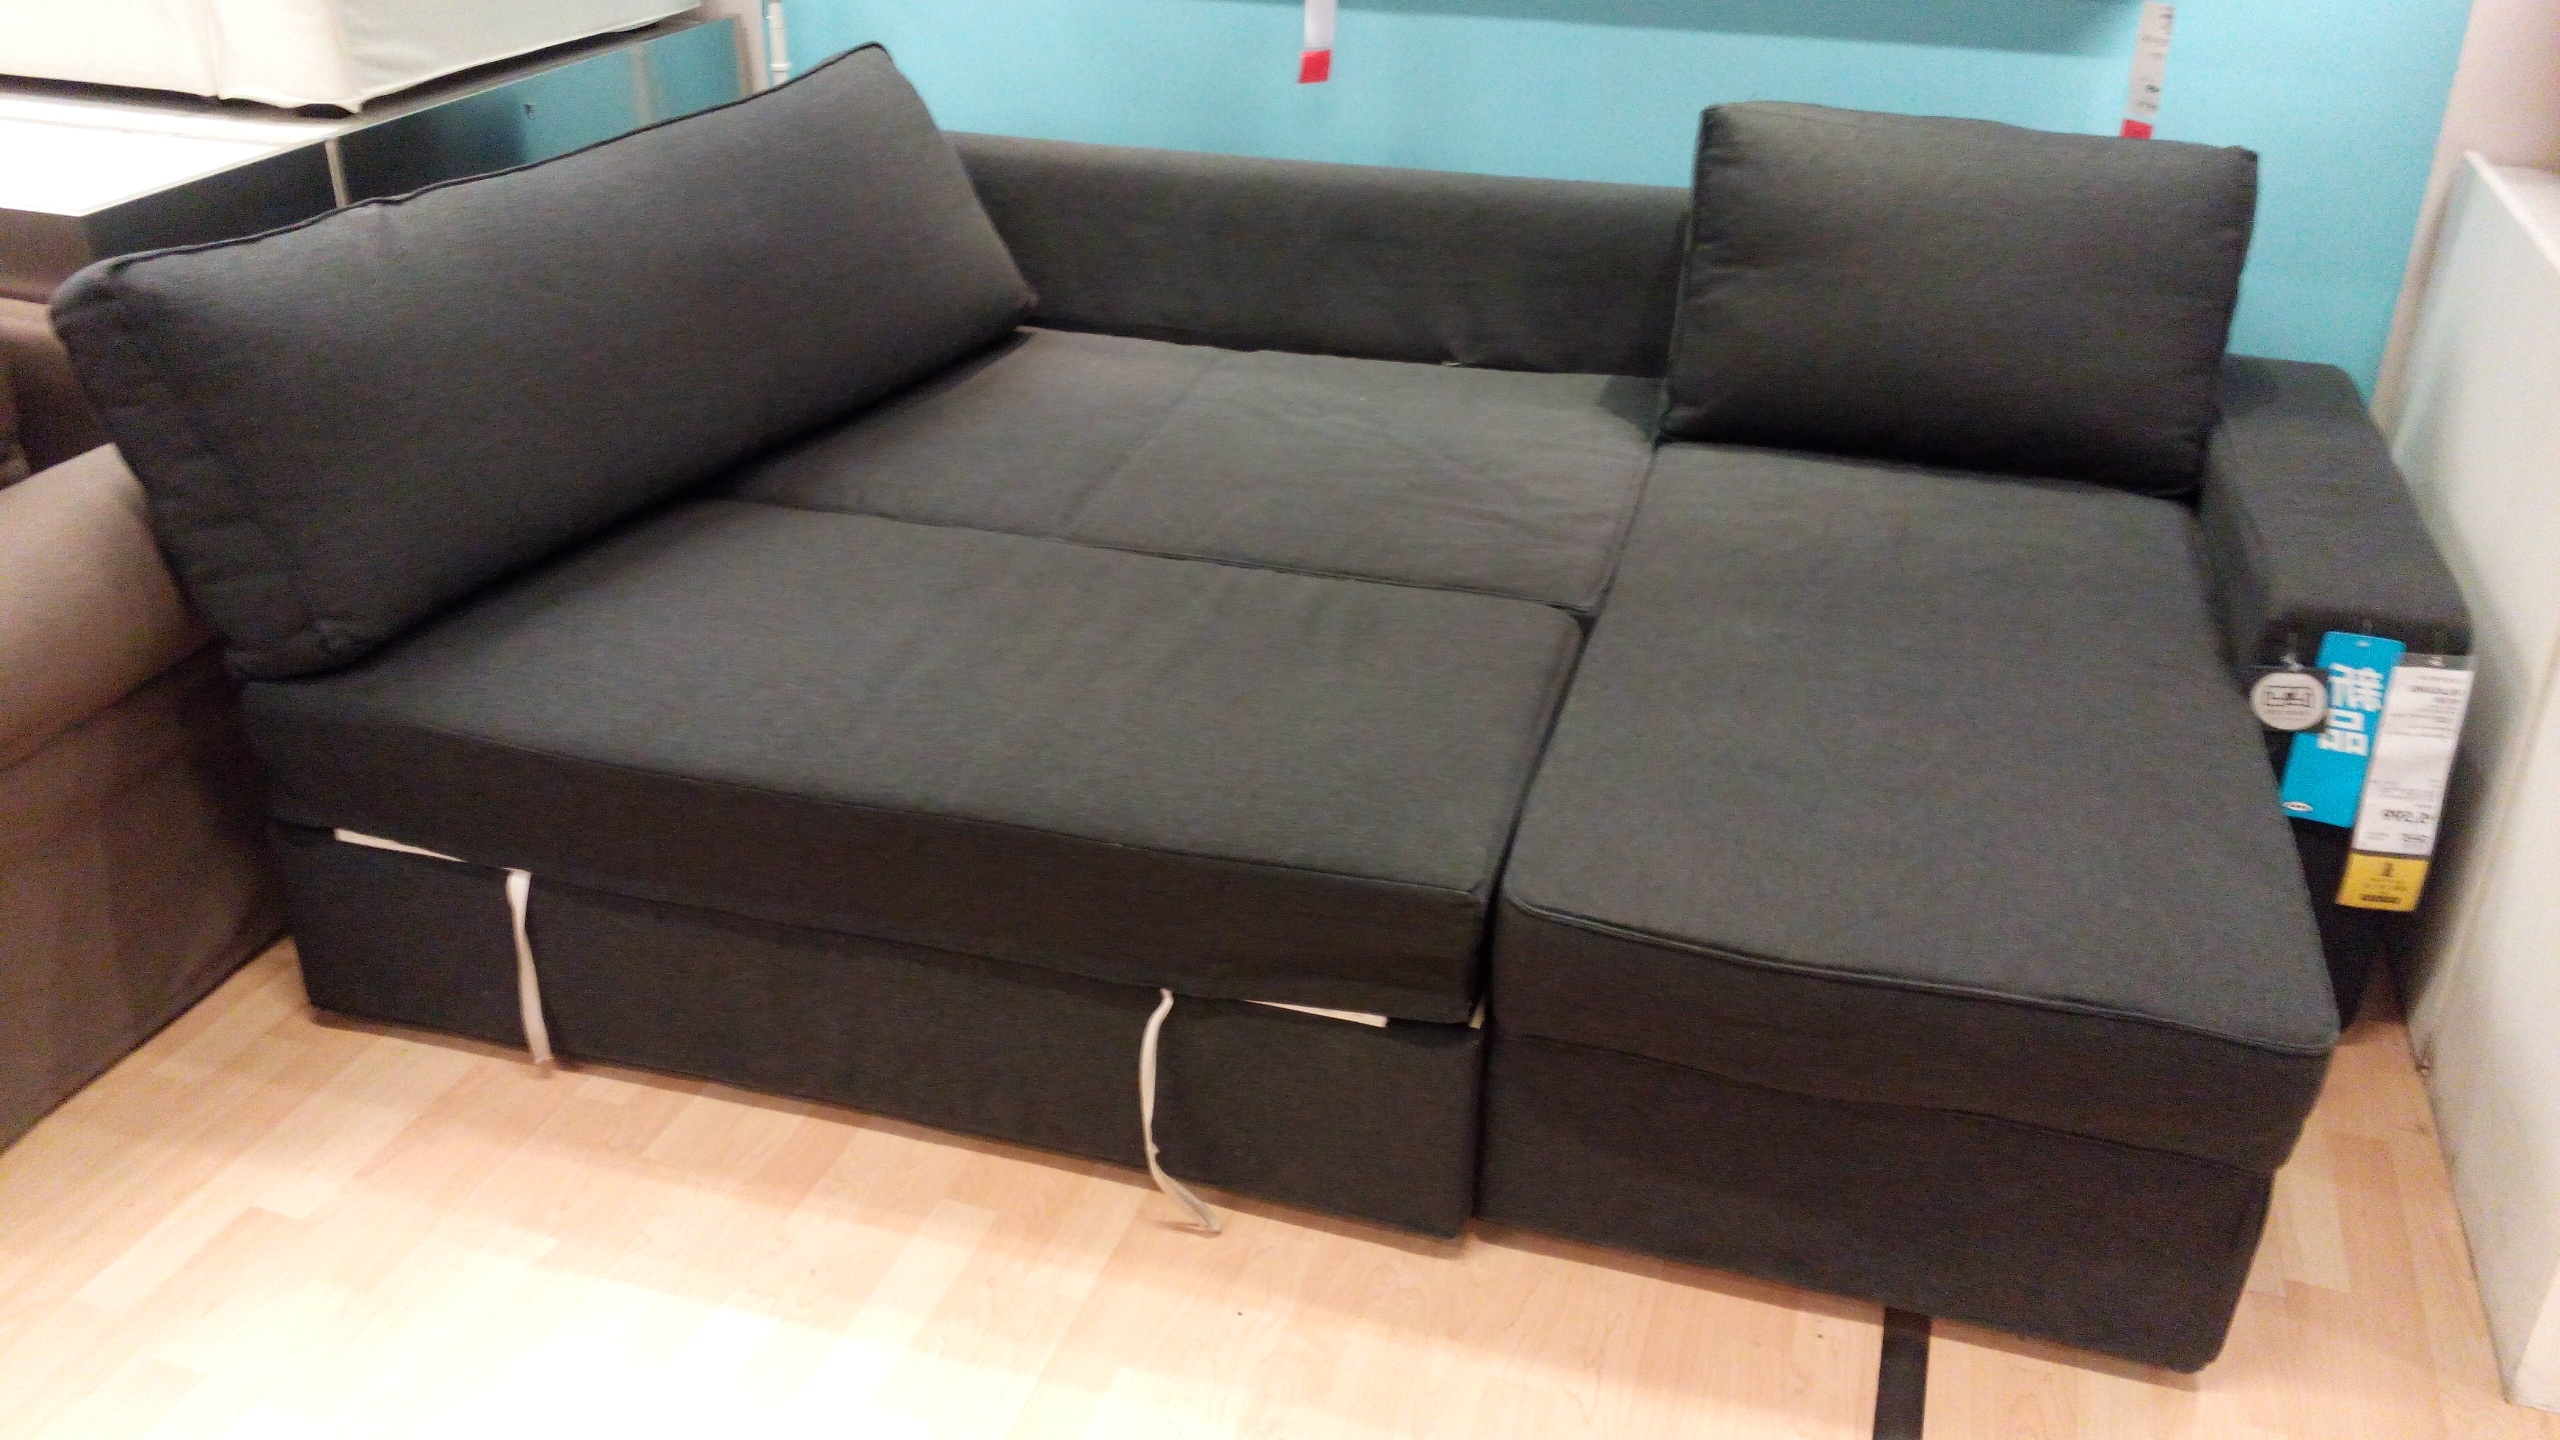 Well Known Ikea Vilasund And Backabro Review – Return Of The Sofa Bed Clones! Inside Ikea Sofa Beds With Chaise (View 3 of 15)